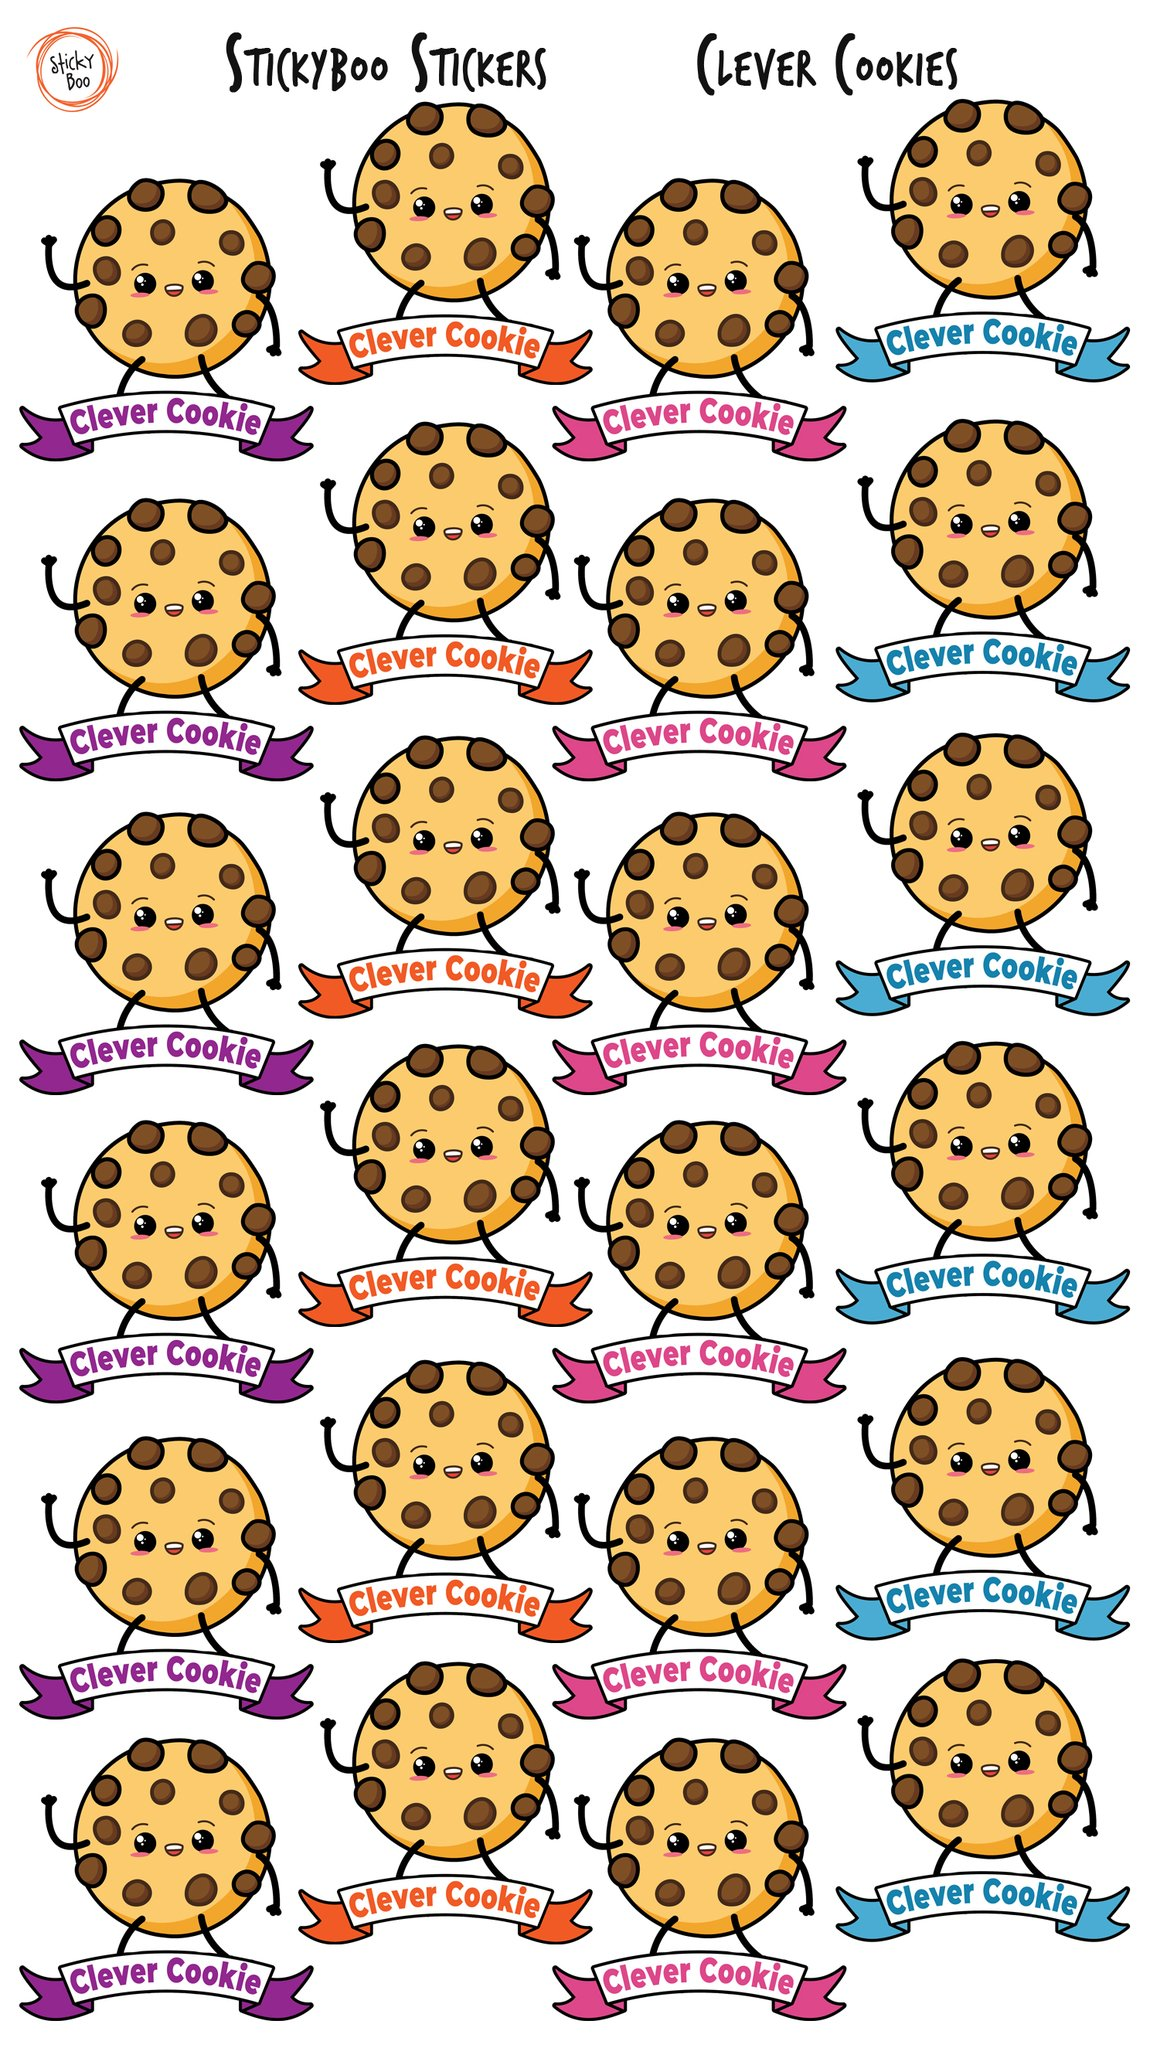 Sticky Boo Reward Stickers - Clever Cookie